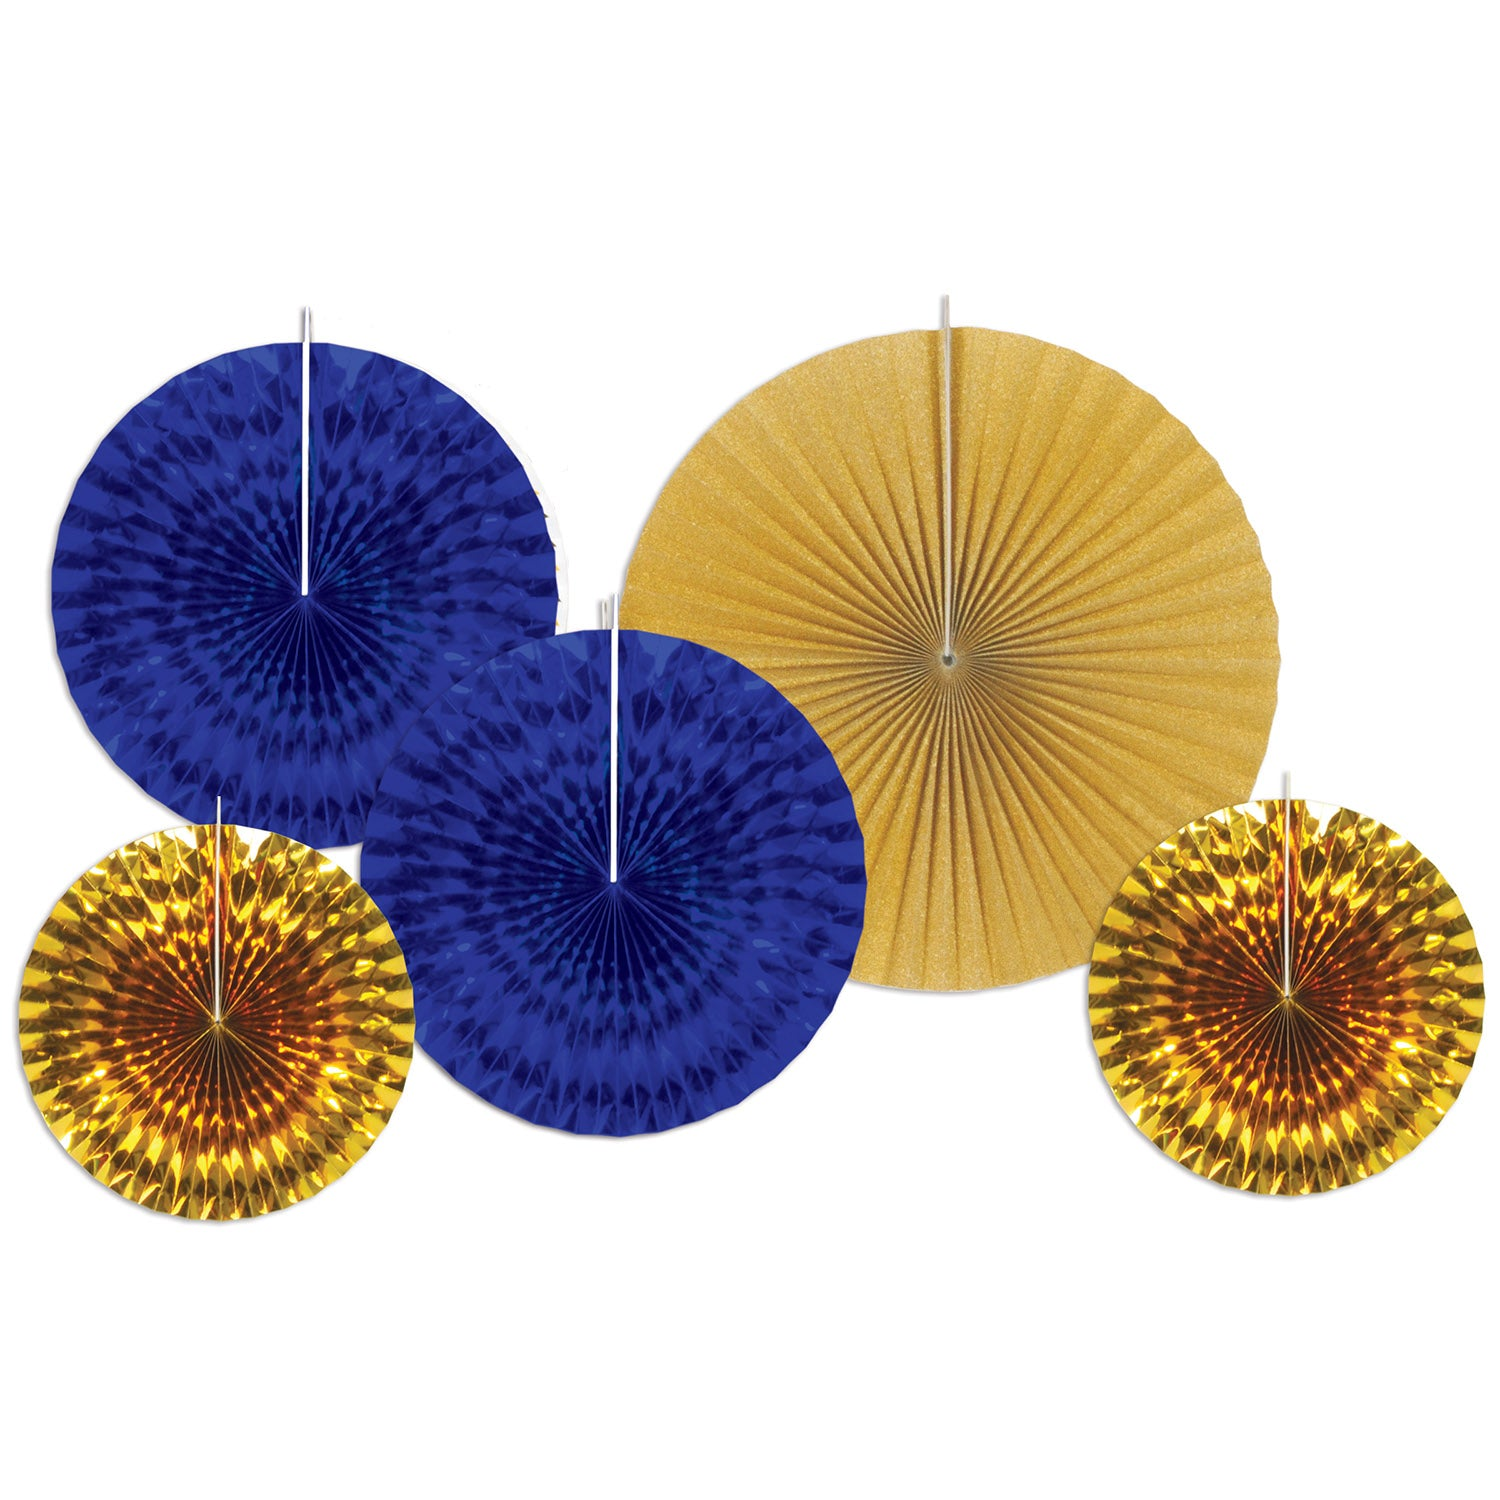 Assorted Paper & Foil Decorative Fans (5/Pkg), asstd blue & gold by Beistle - 21st Birthday Theme Decorations